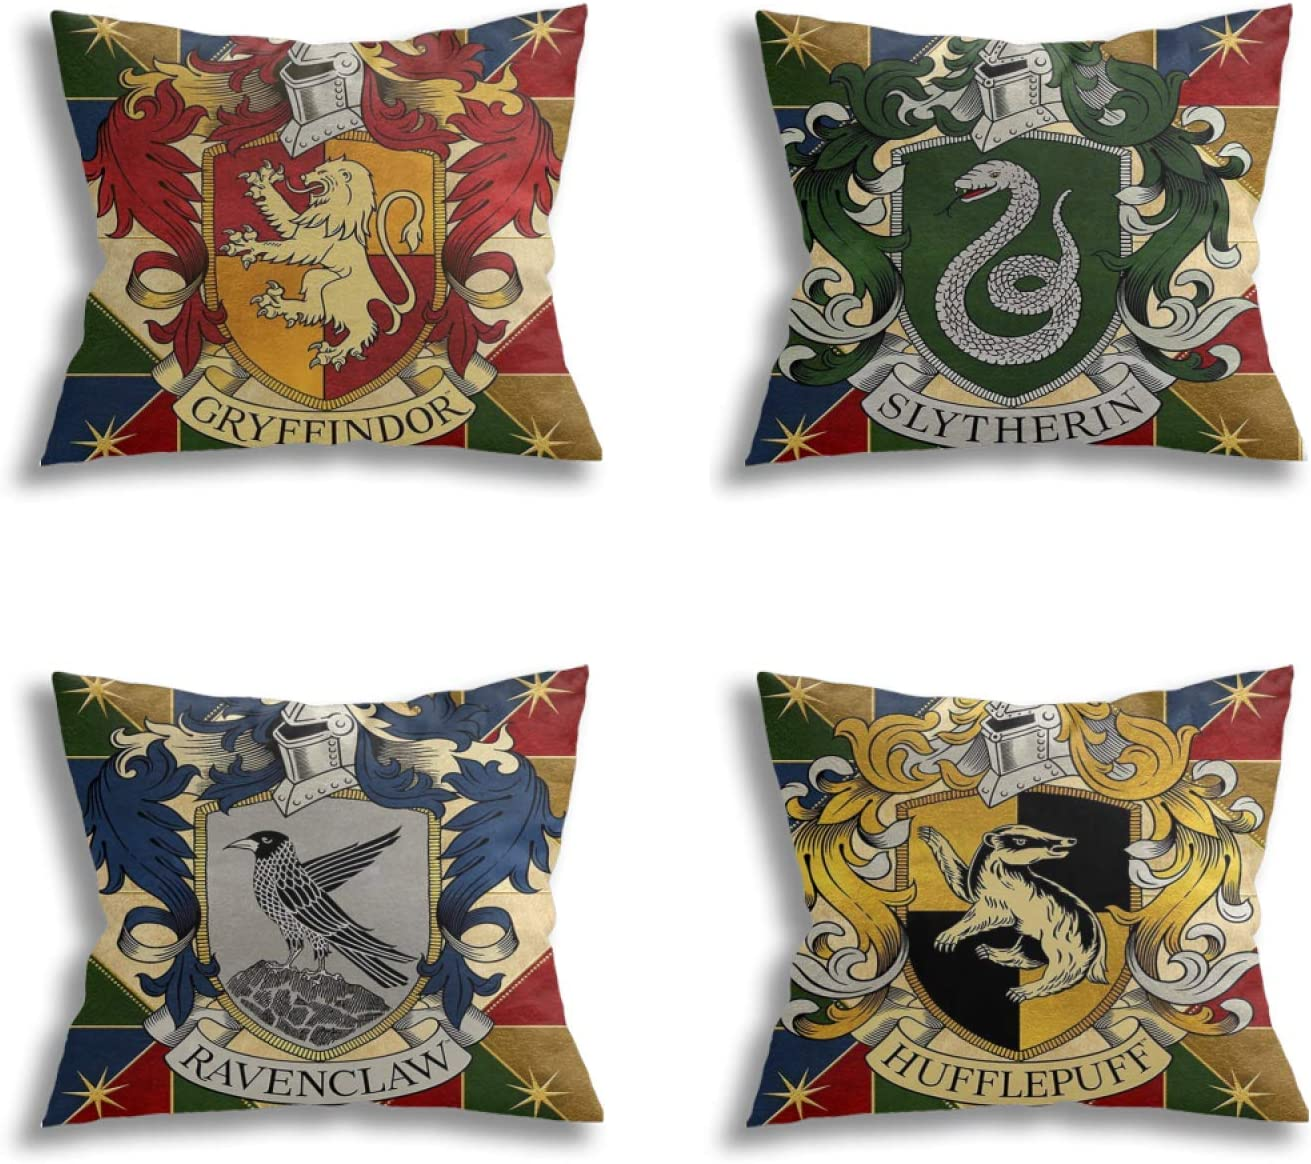 Akyuu Harry HogwartsSchool Potter Pillowcases, Set of 4 HarryPotter Pillow Covers for Home Decor Room Couch Sofa Bed 18x18 in